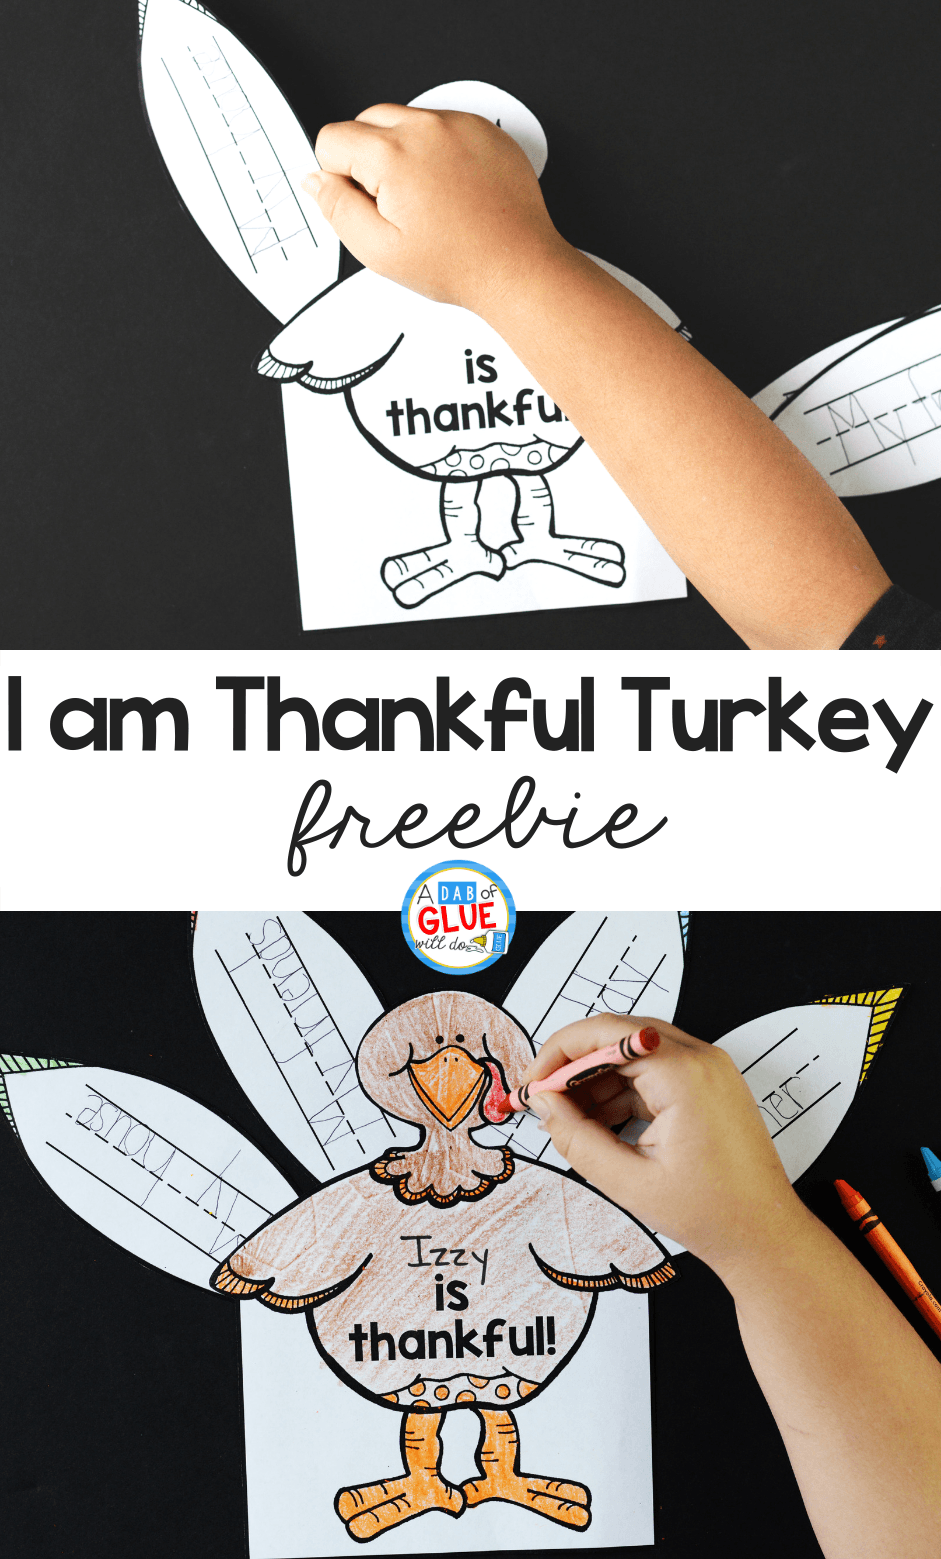 I am Thankful Turkey